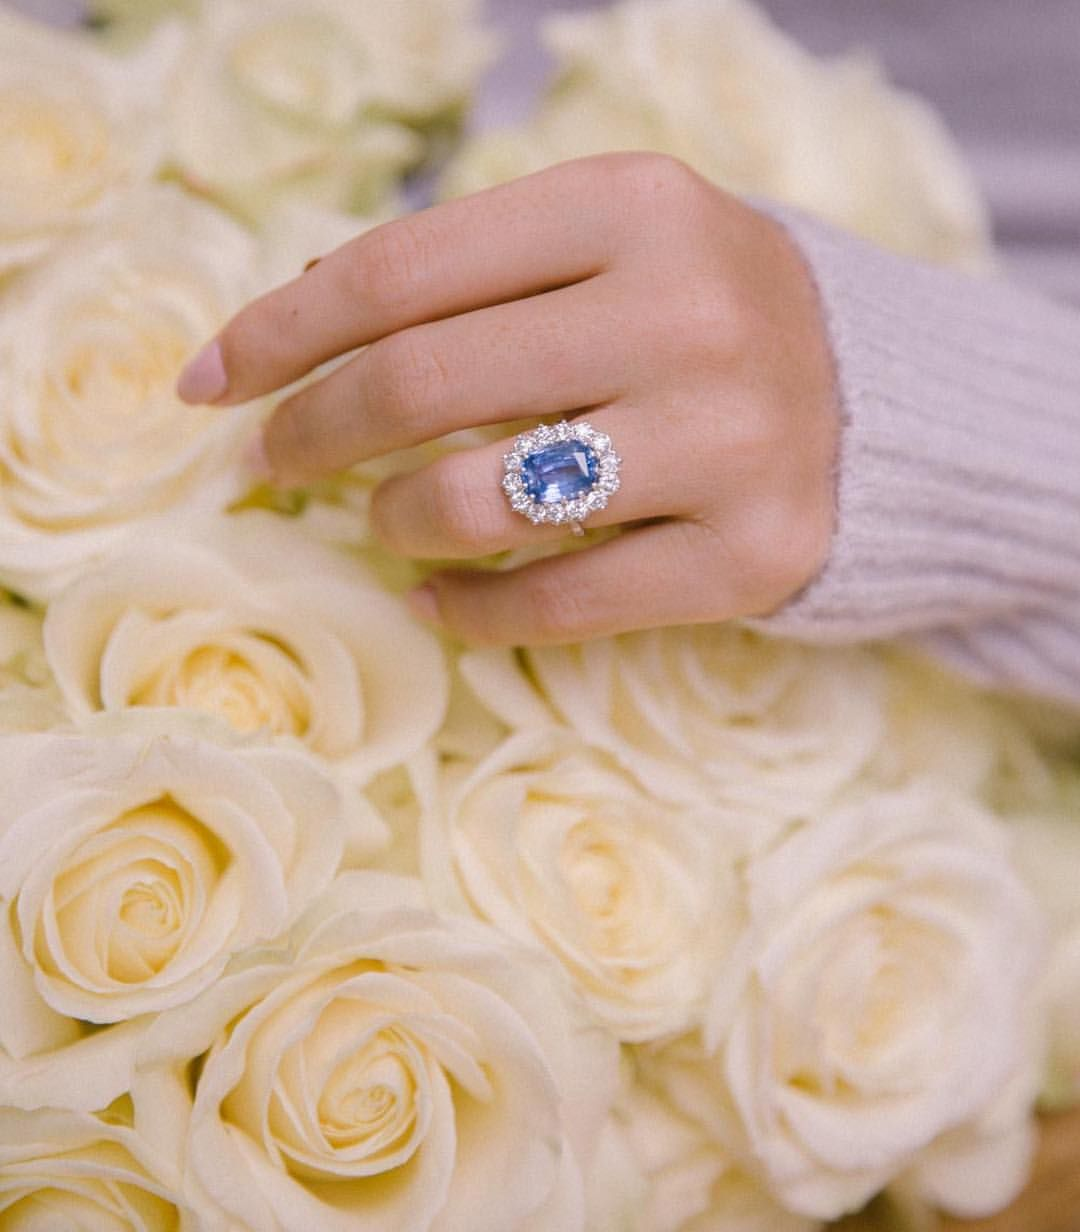 The Pale Blue Sapphire Ring Of Newly Engaged Rosielondoner